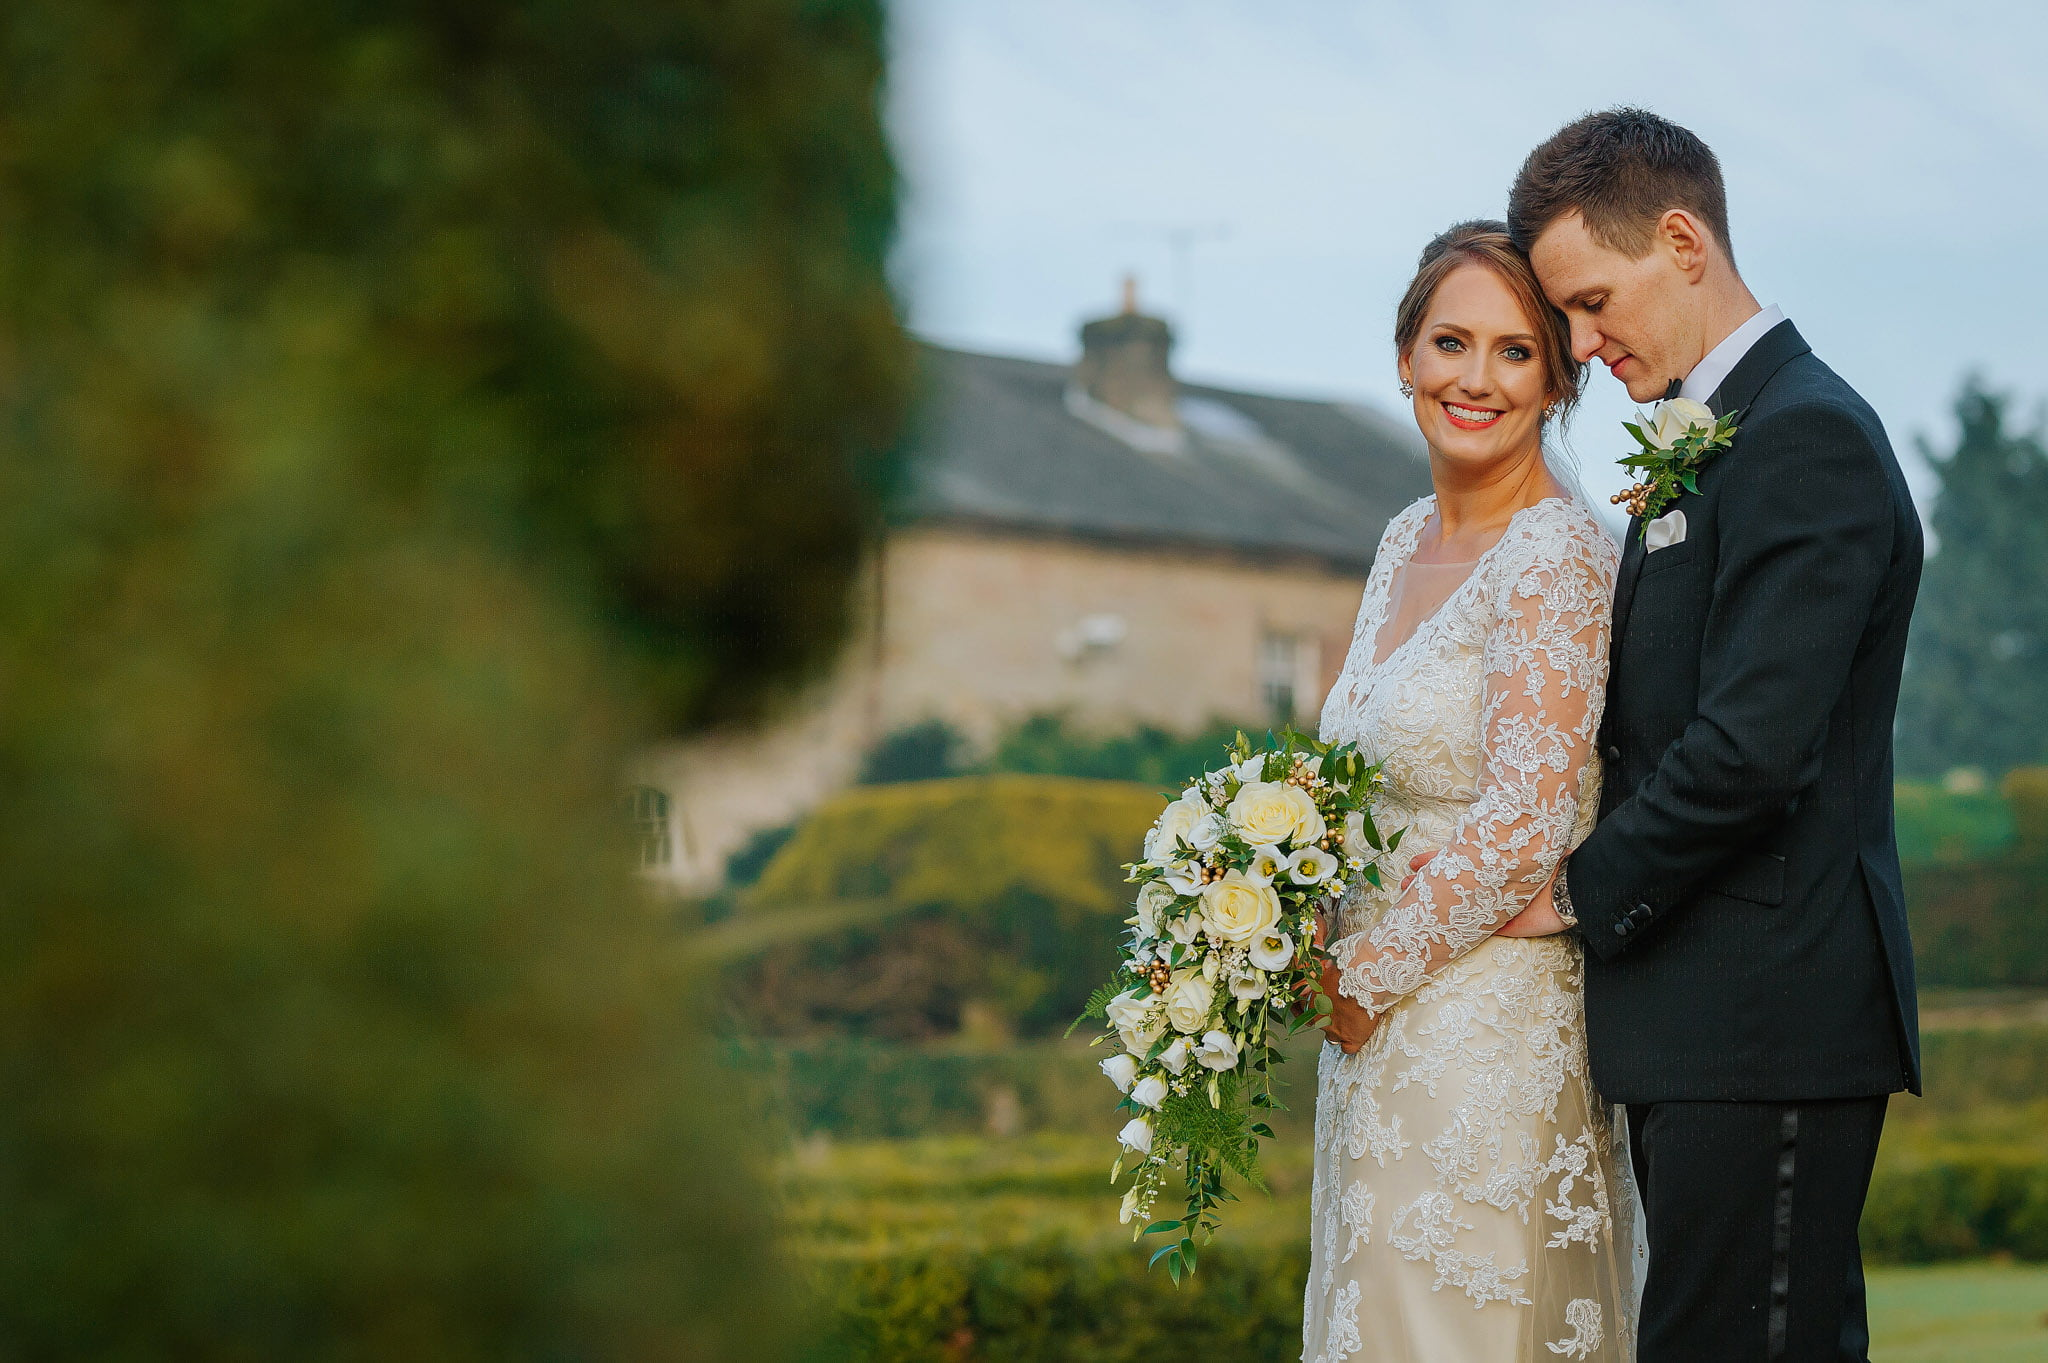 Coombe Abbey wedding in Coventry, Warwickshire - Sam + Matt 54